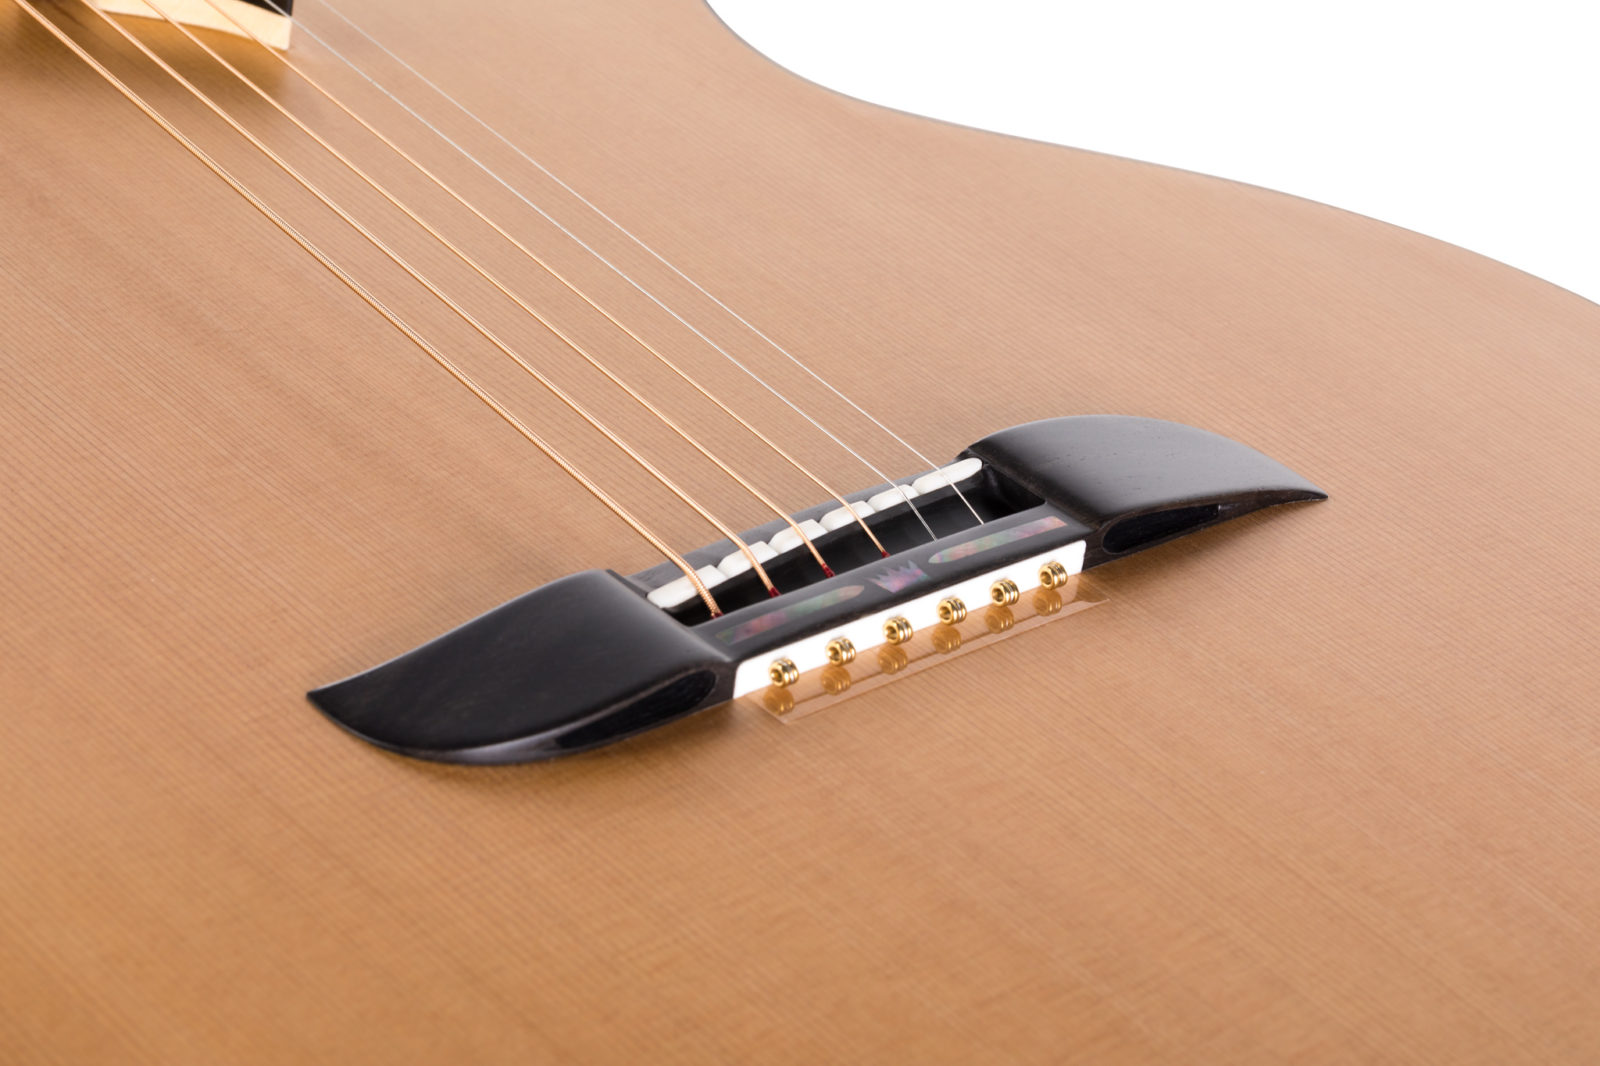 Innovative guitar bridge with drilled holes